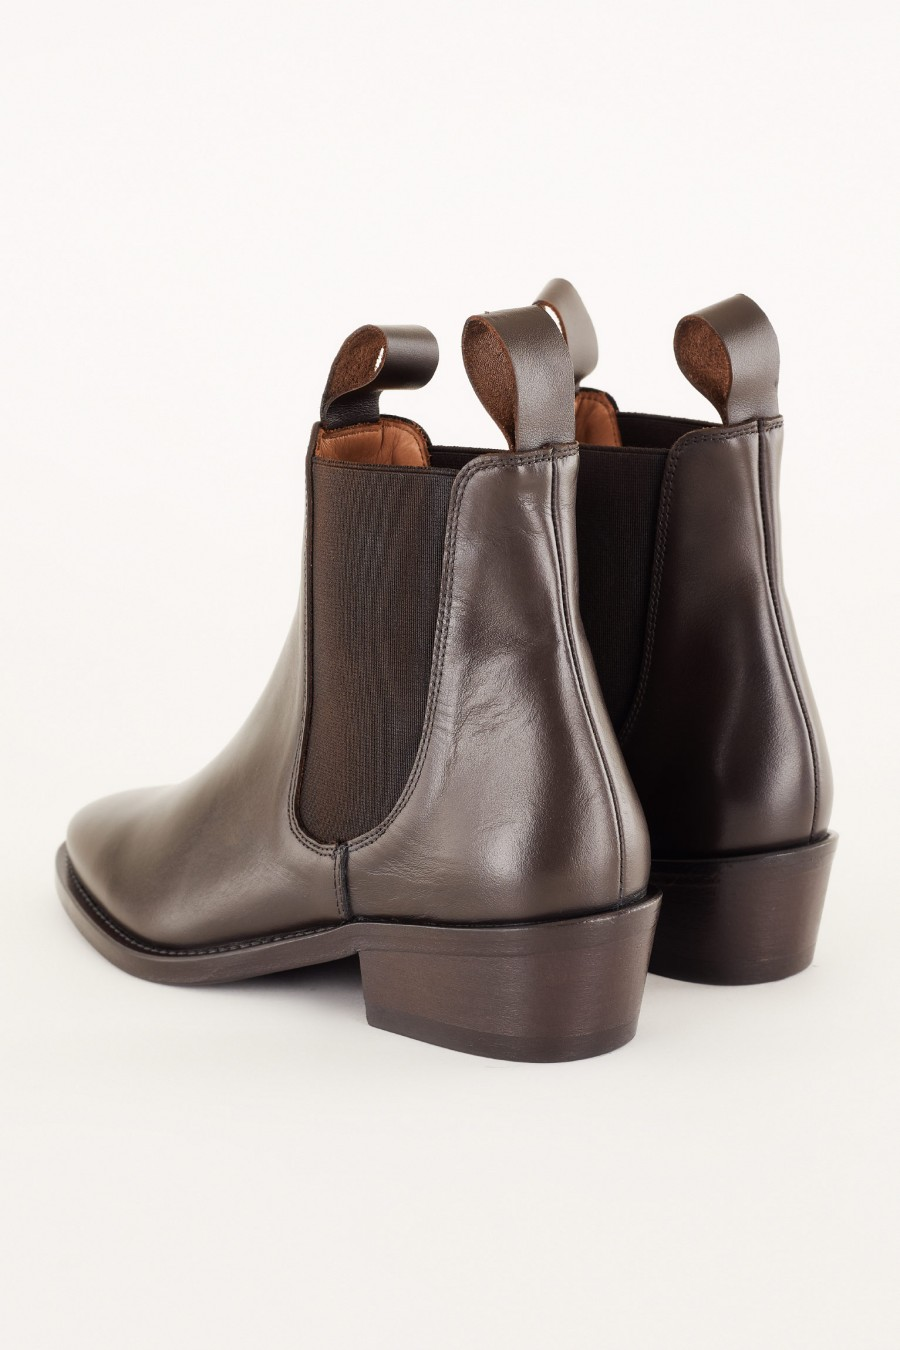 brown leather ankle boots with low heels